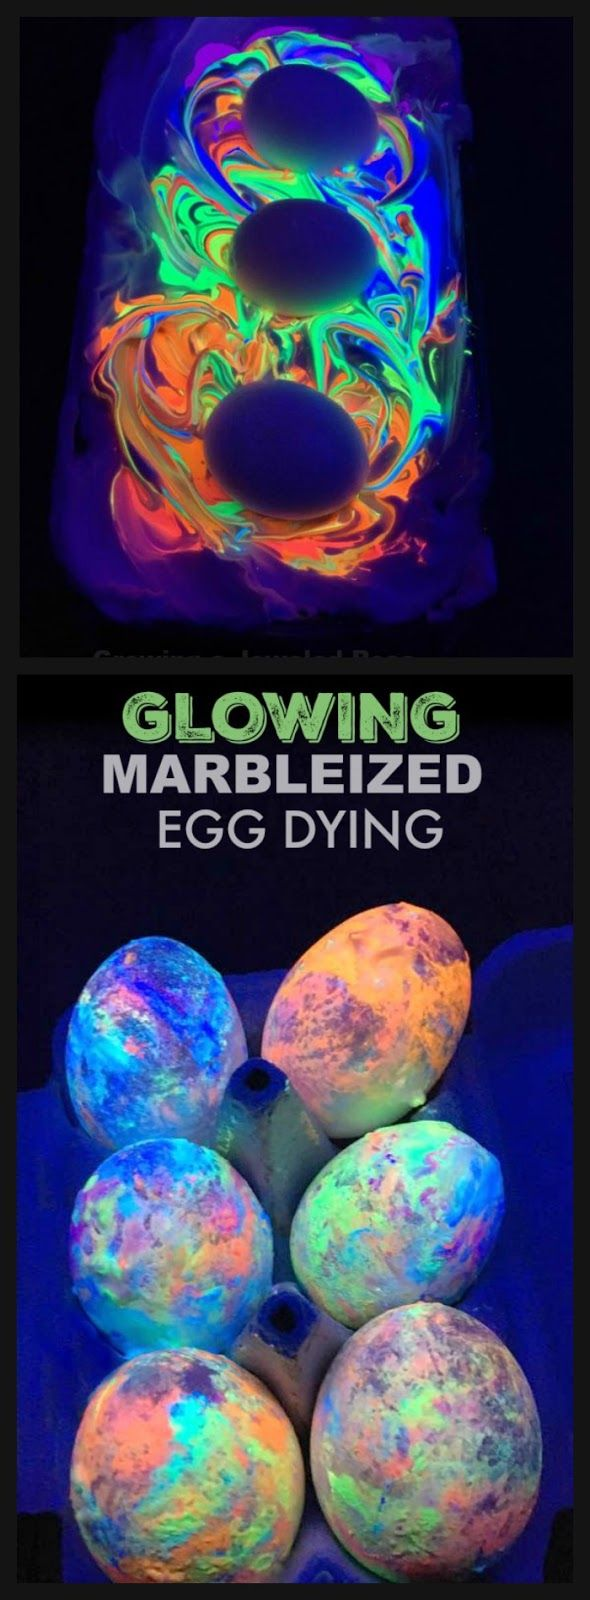 Glowing marbleized egg dying with shaving cream. SO COOL! I can't wait to try this! The entire process is stunning, and the end result BEAUTIFUL!